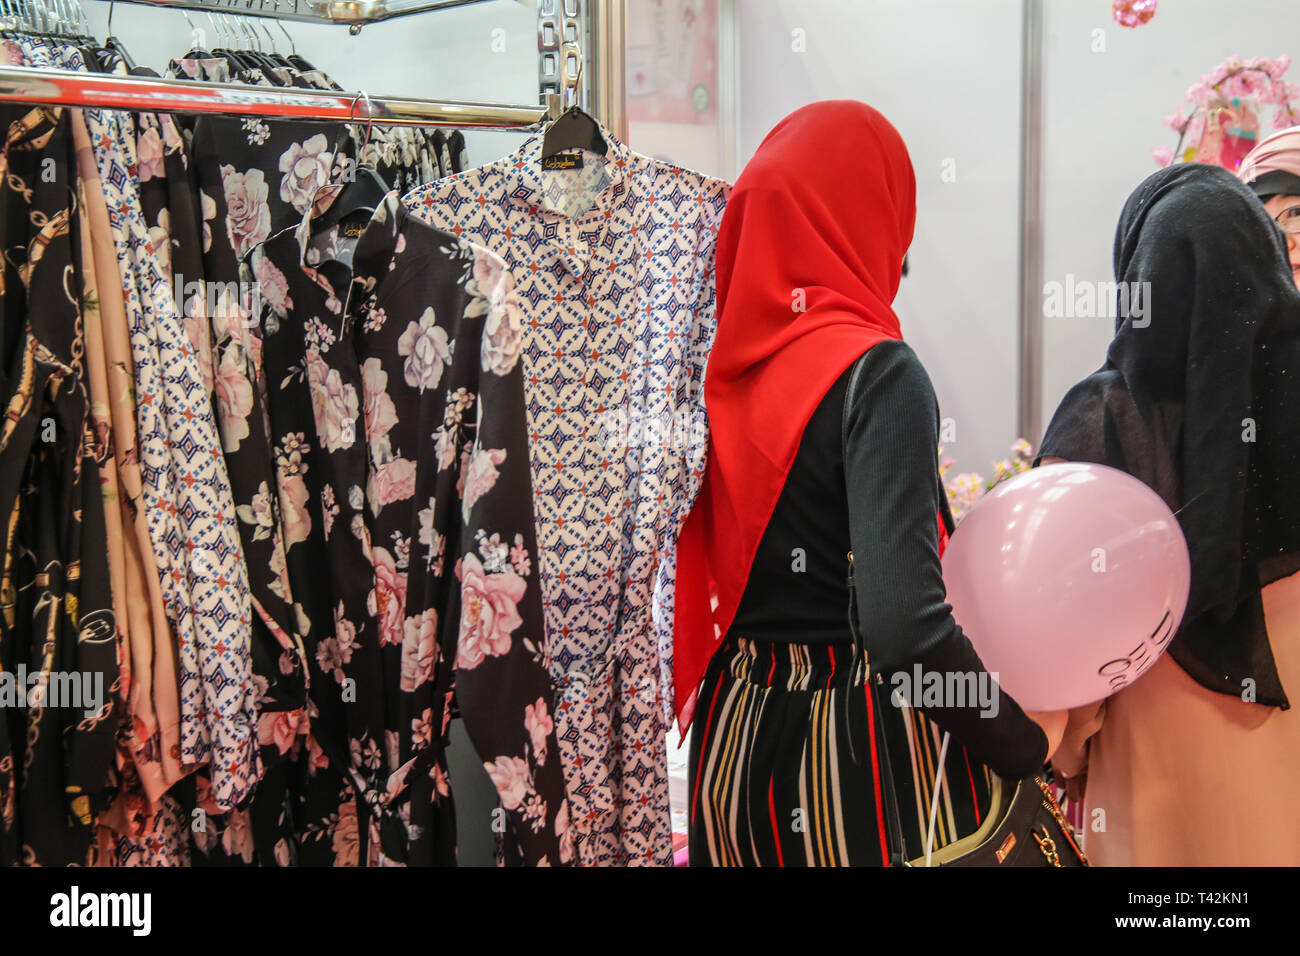 London UK 13 April 2019 Muslim World  offering Halal Food ,Modest fashion show ,wellness and Beauty stage ,live Painting , over 200 shopping stalls ,and top chefs doing cooking demonstration is the perfect day out to enjoy all Muslim World has to offer@Paul Quezada-0Neiman/Alamy Live News - Stock Image